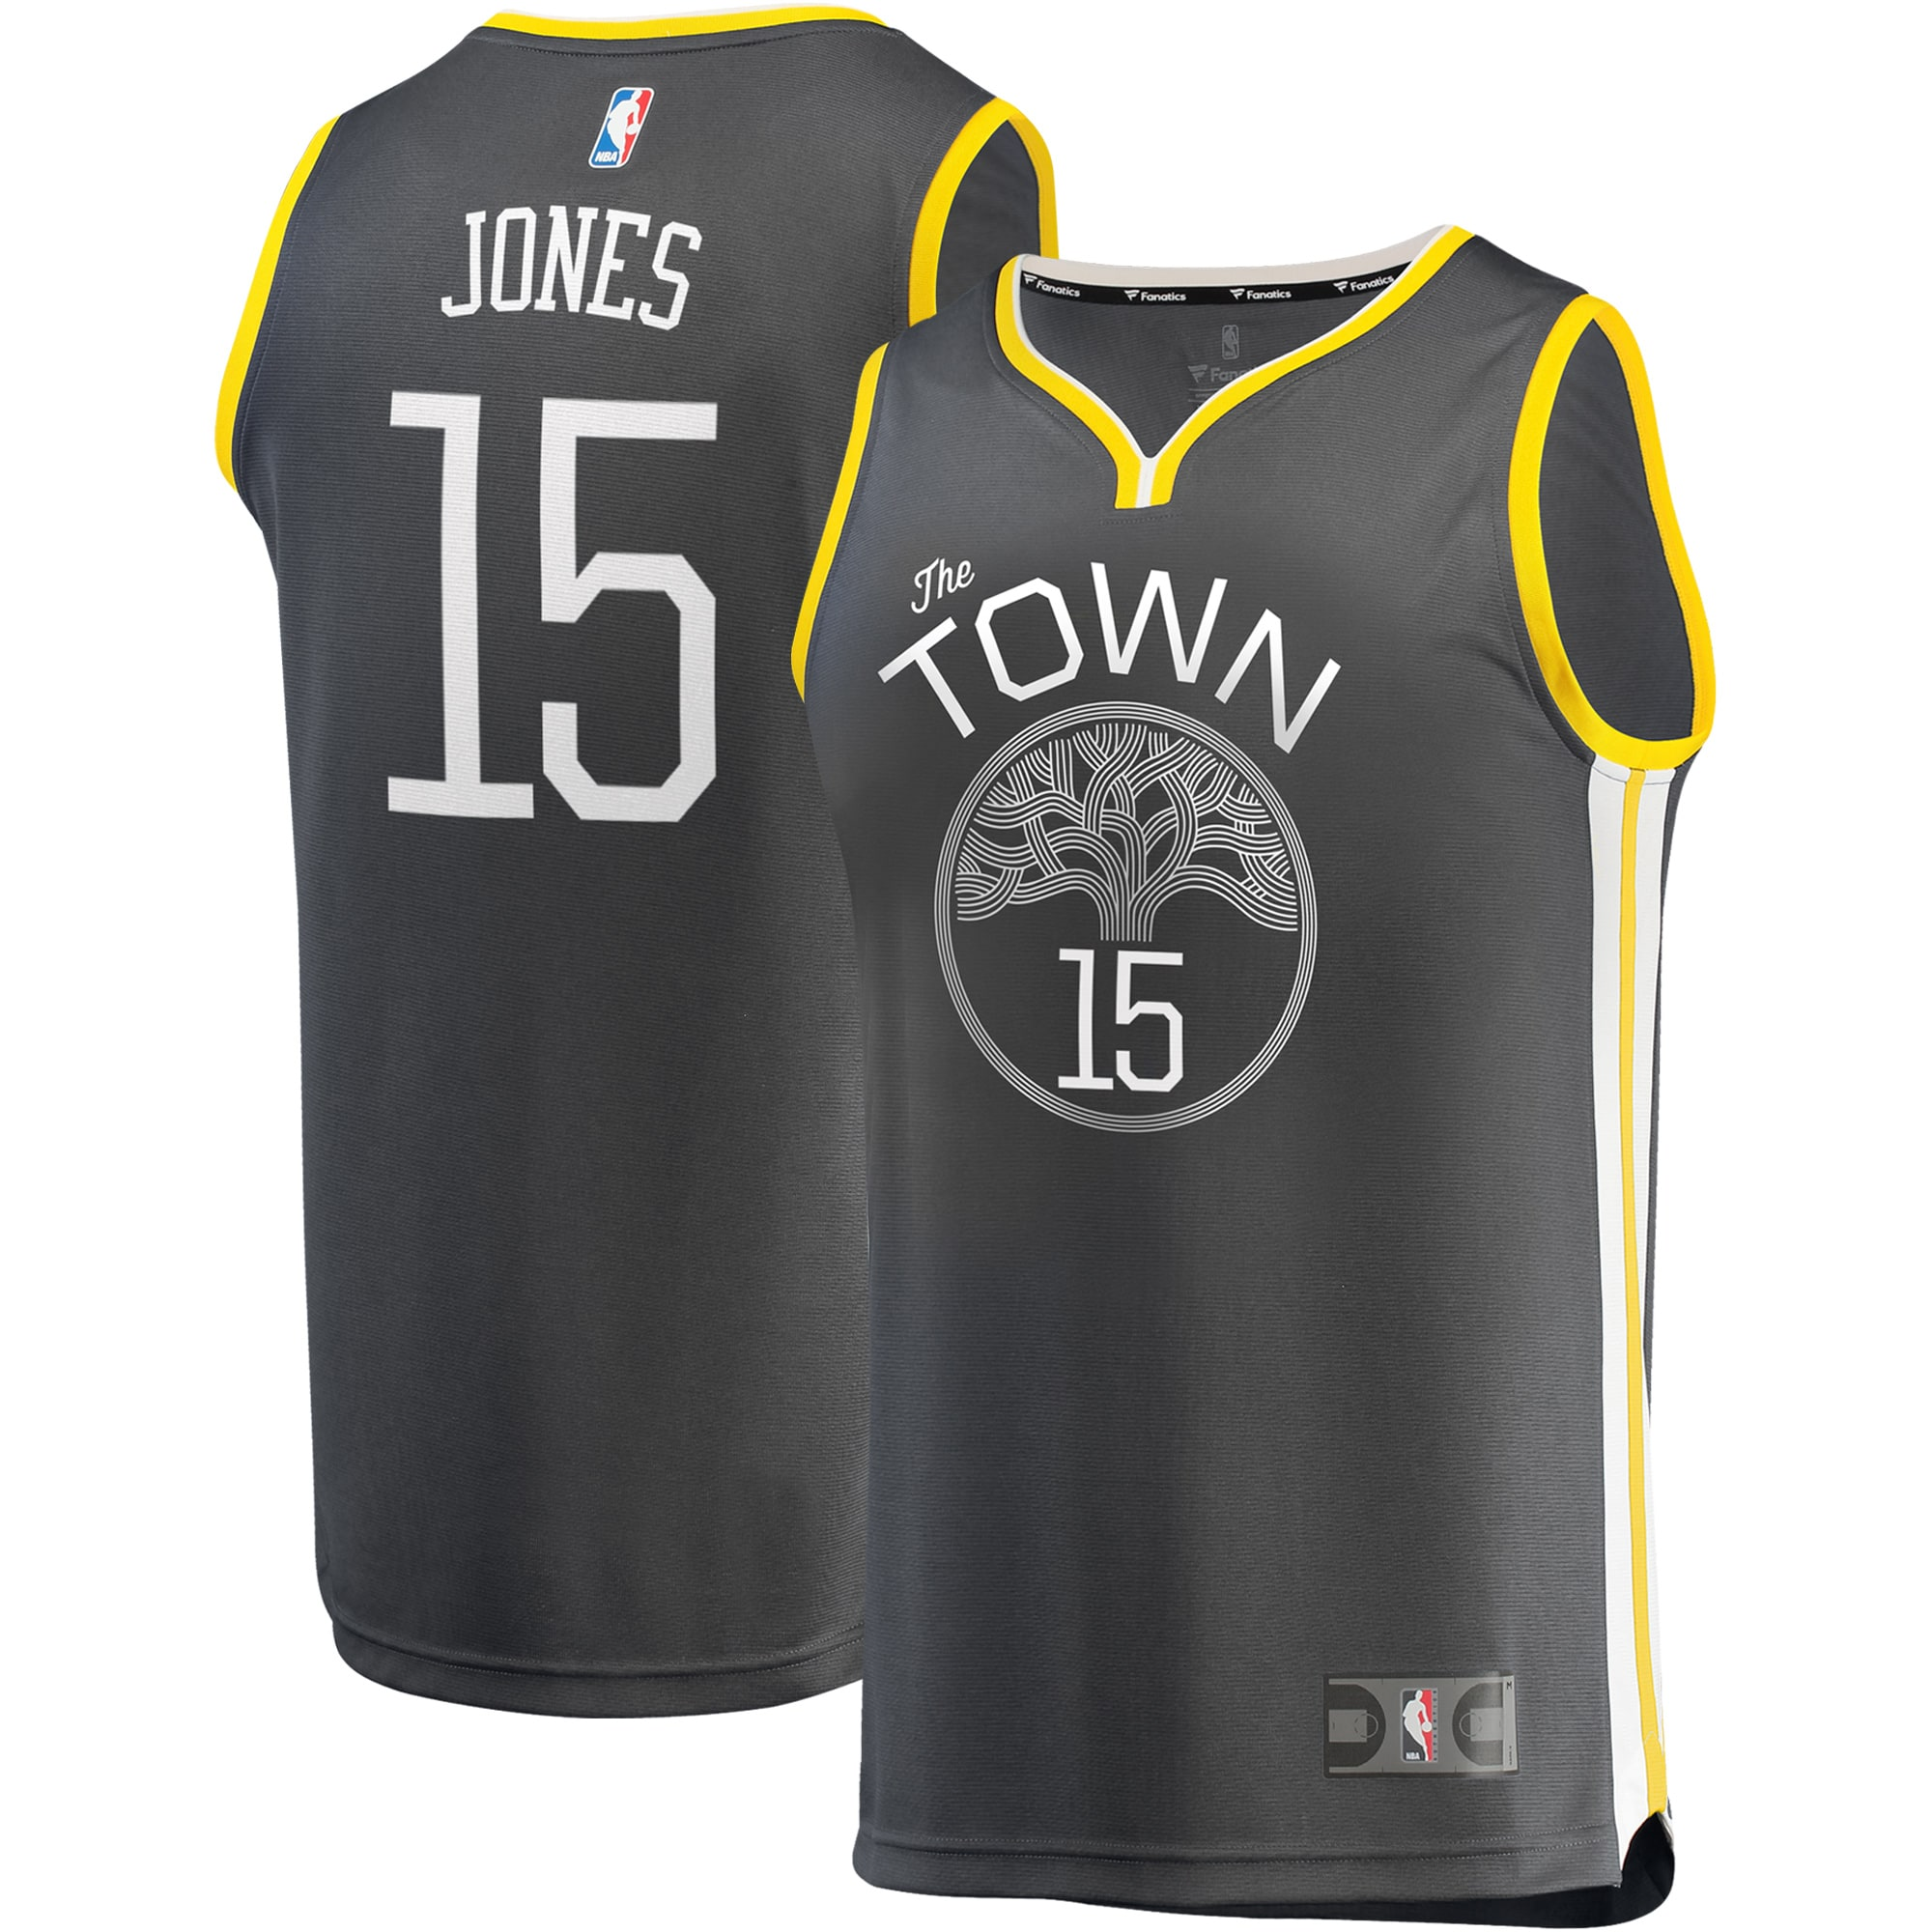 Damian Jones Golden State Warriors Fanatics Branded Fast Break Replica Player Jersey Charcoal - Statement Edition